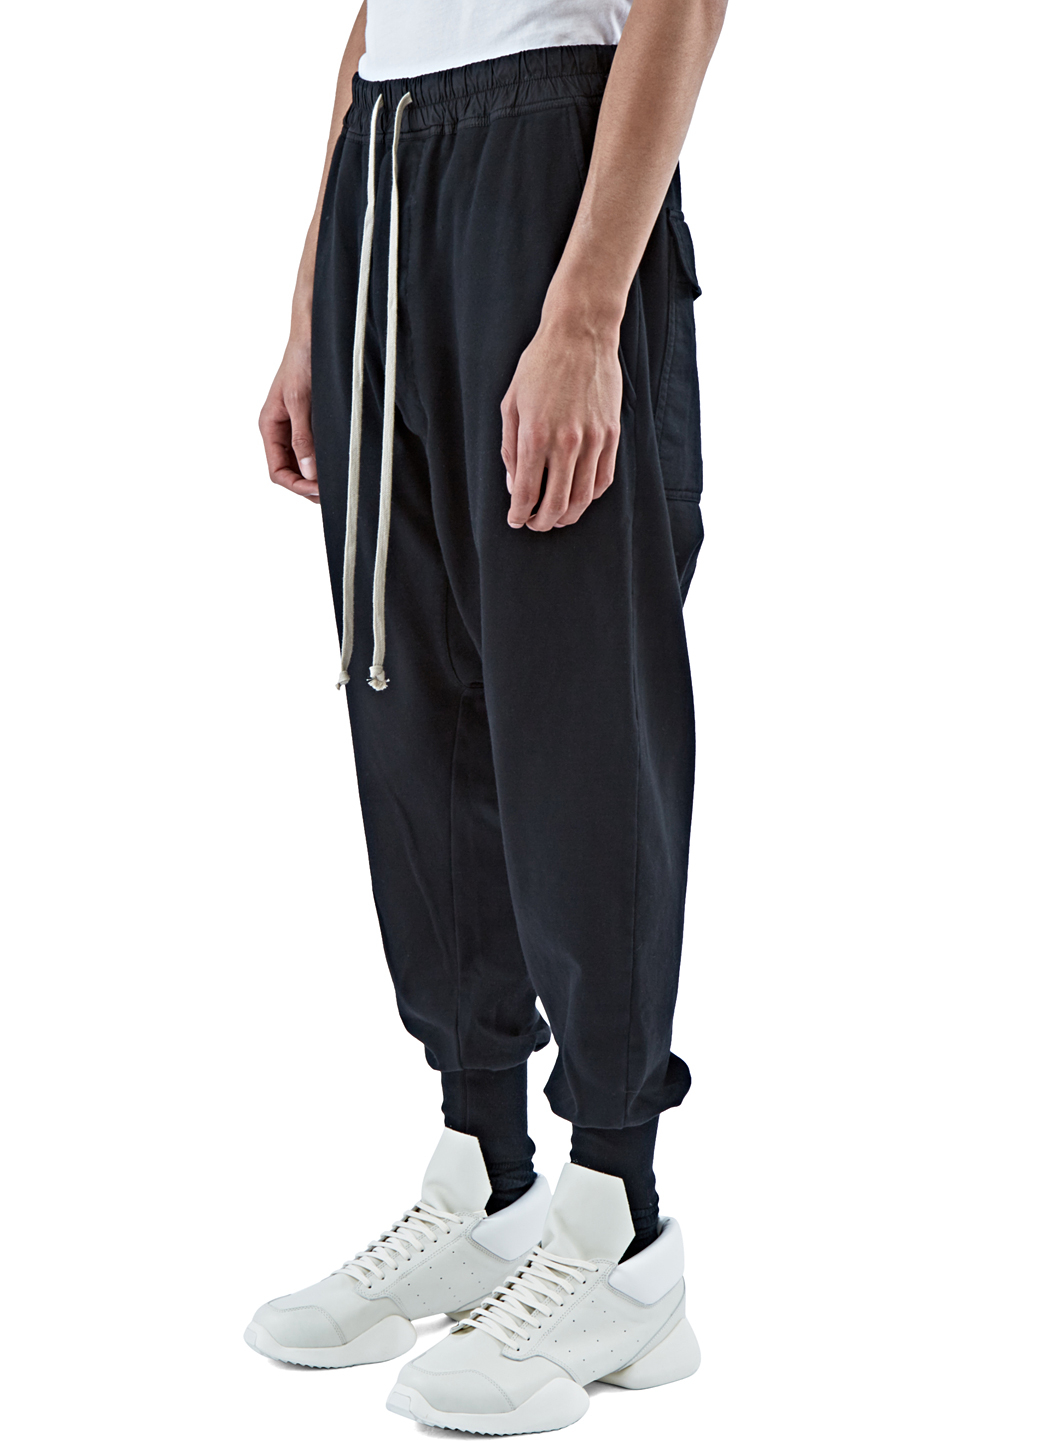 drawstring track pants - Black Rick Owens Cheap Wholesale Price Discount Ebay From China Outlet Best Prices Discount Marketable DSeZ7OECp